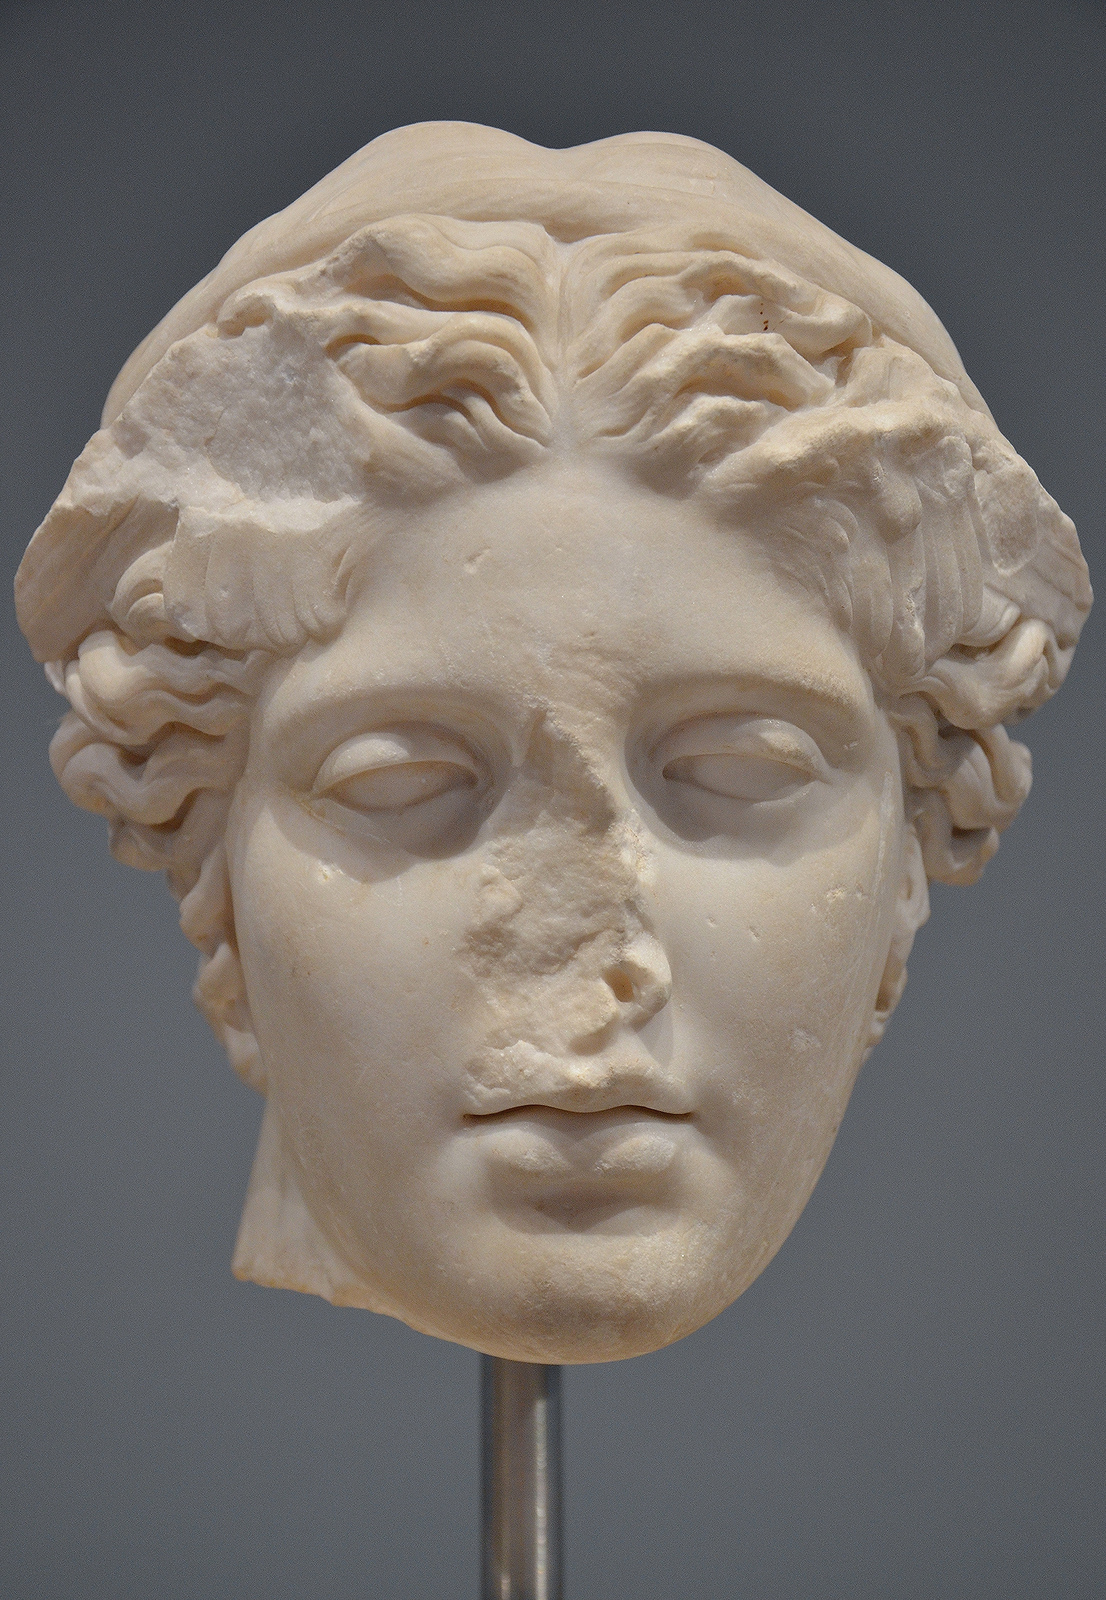 Art and sculptures from Hadrian's Villa: Marble head of Hypnos